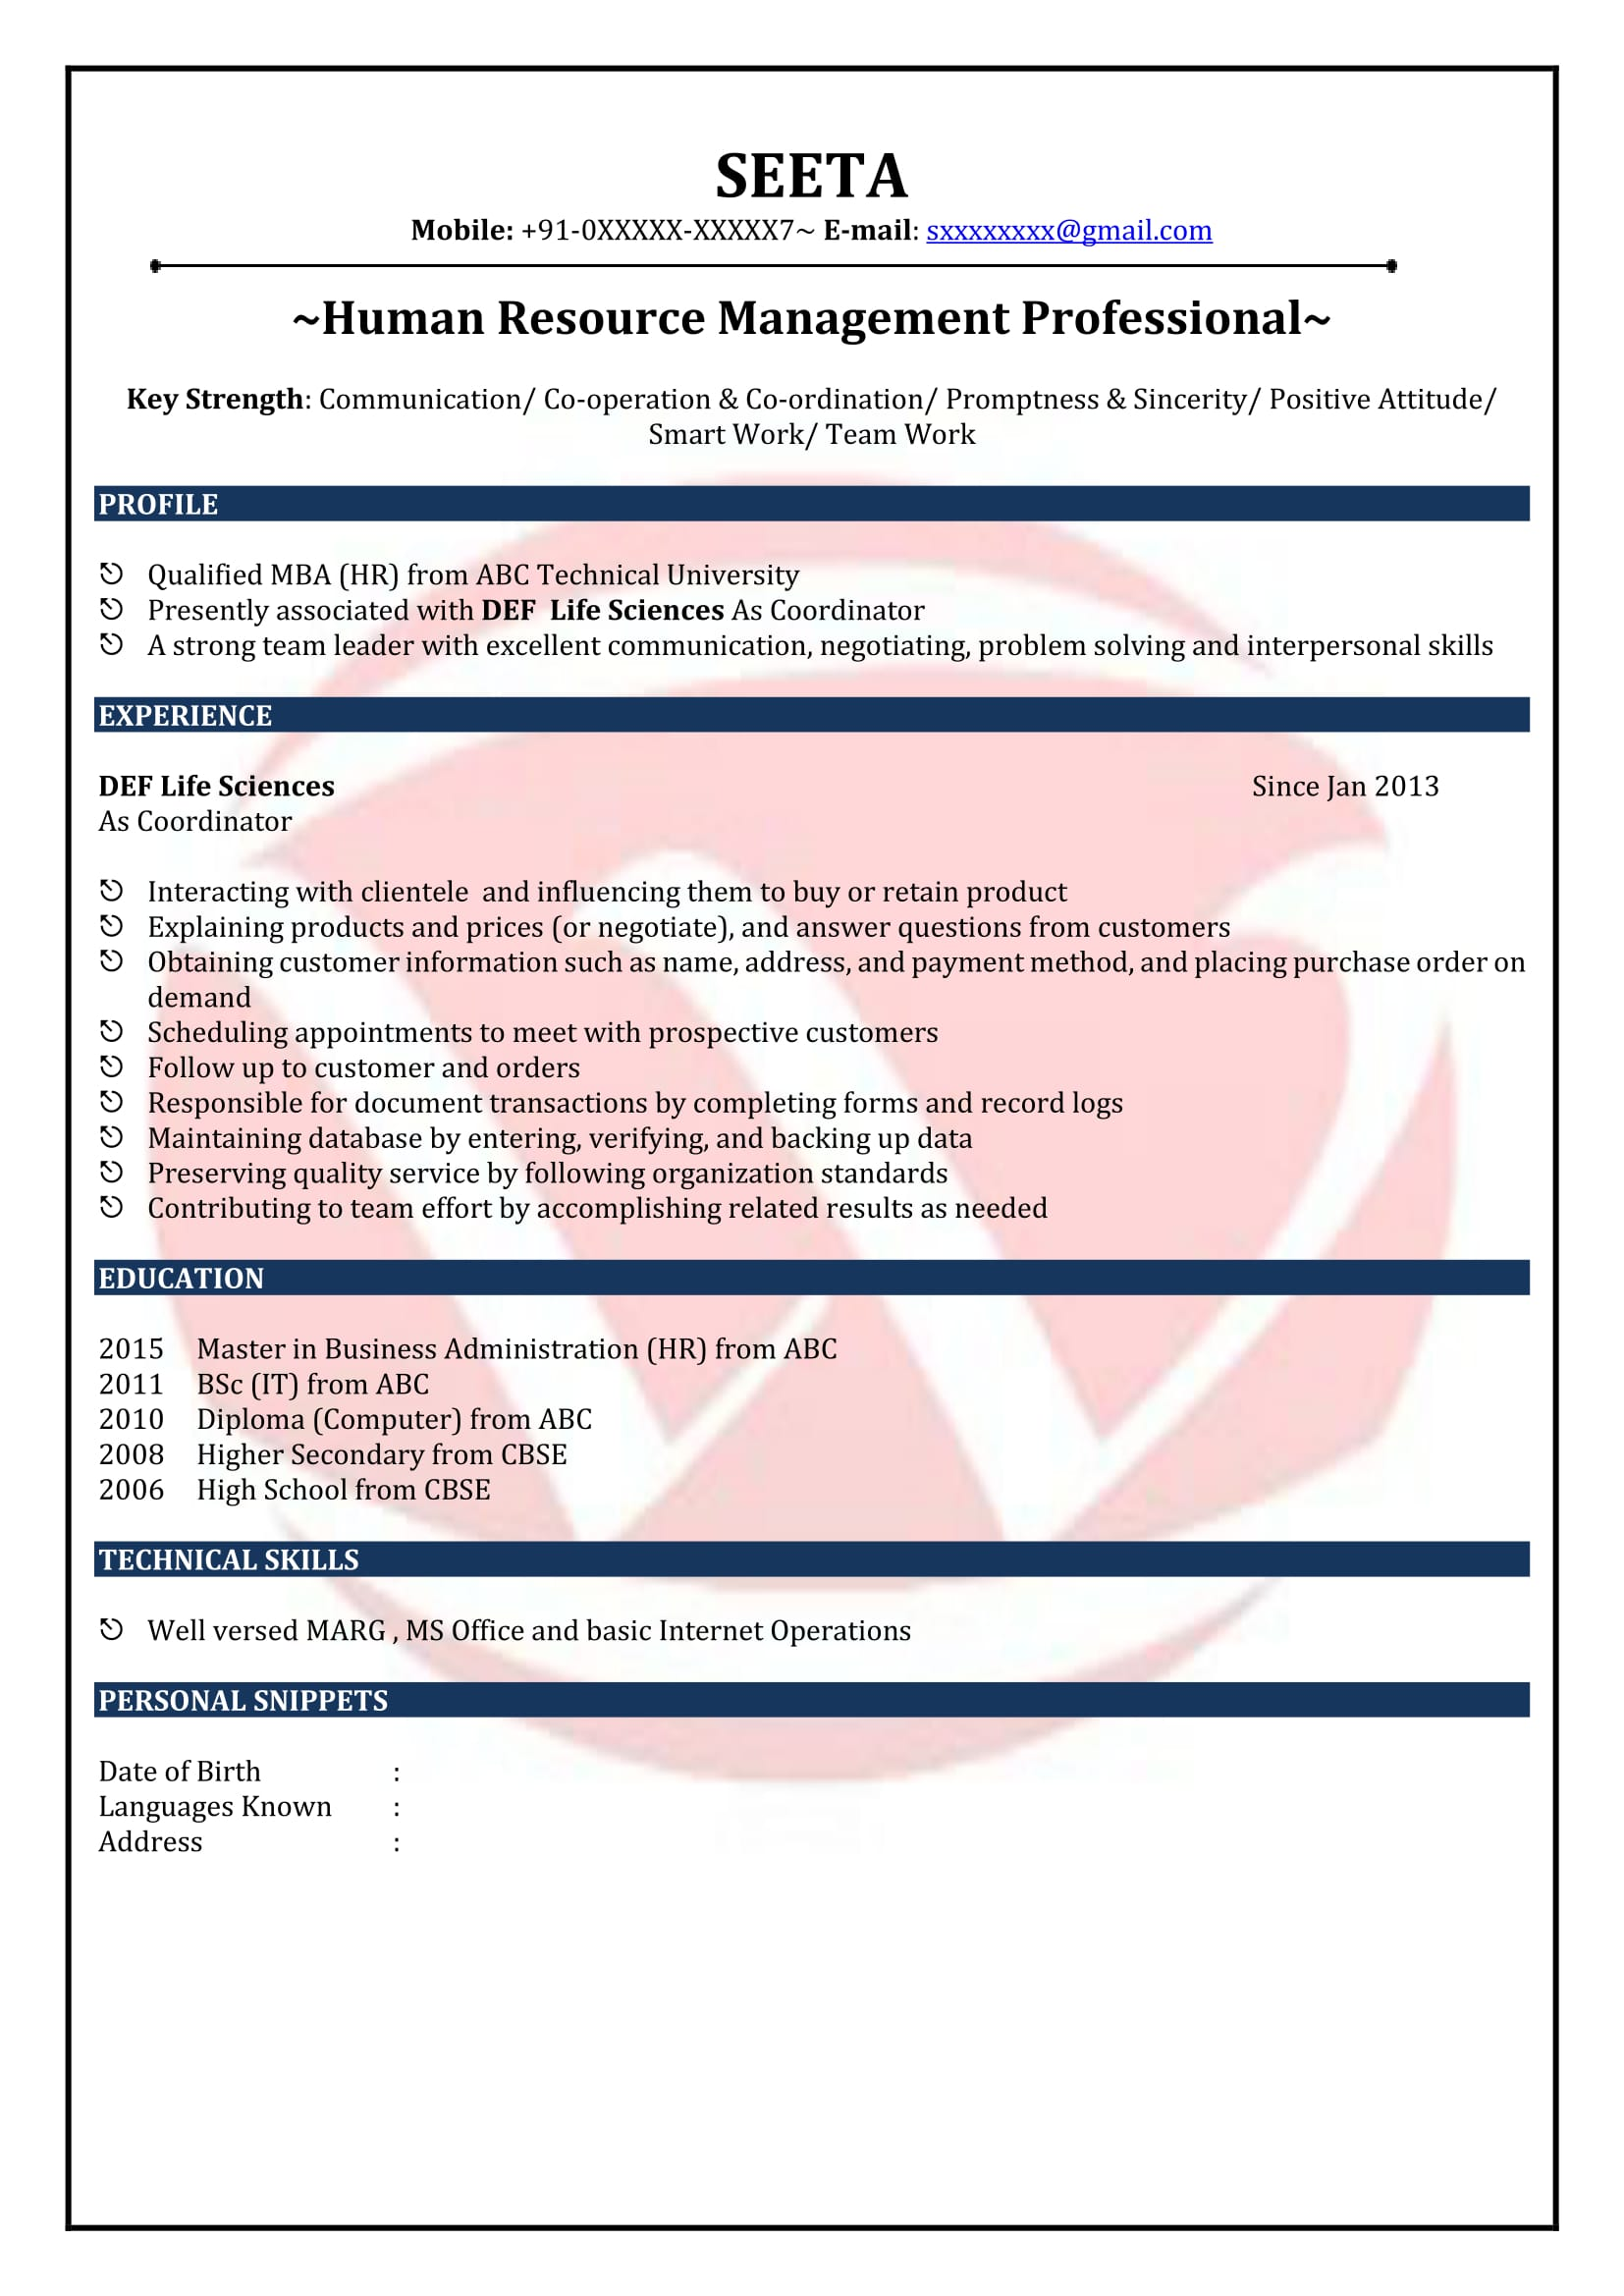 hr fresher sample resumes resume format templates management for elementary teachers with Resume Management Fresher Resume